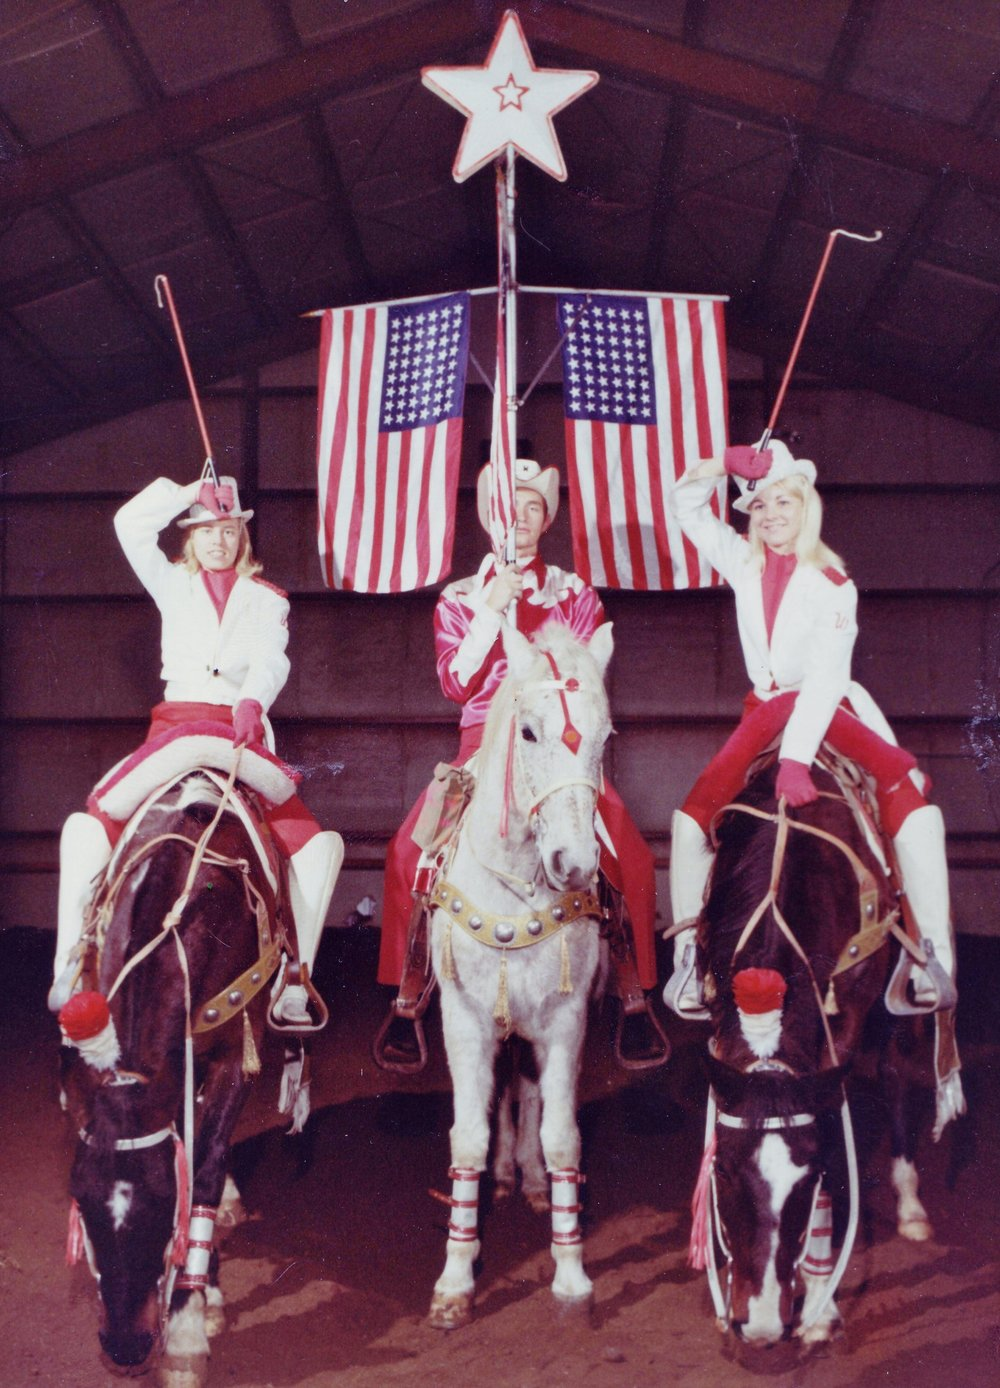 (left to right) Cindy Parsons, Robert Strawn Jr., and Melody Mundell in their Dressage parade costumes, circa 1969